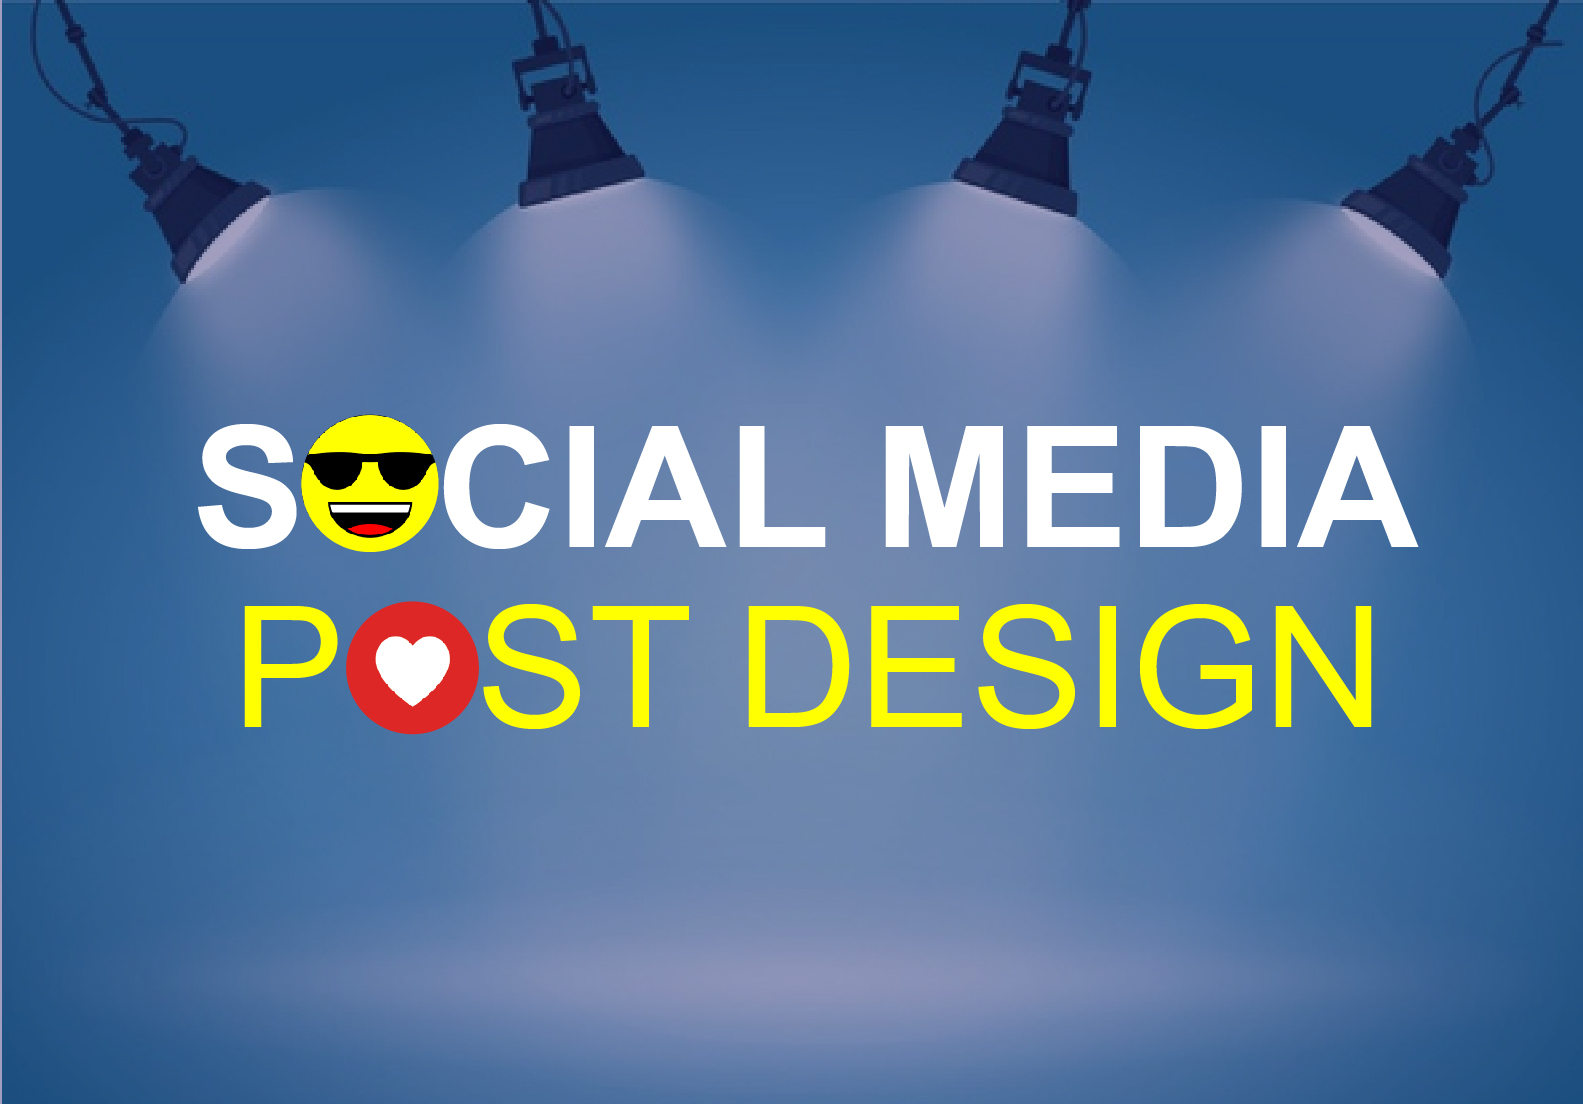 I Will Create Any Brand Of Social Media Design For You